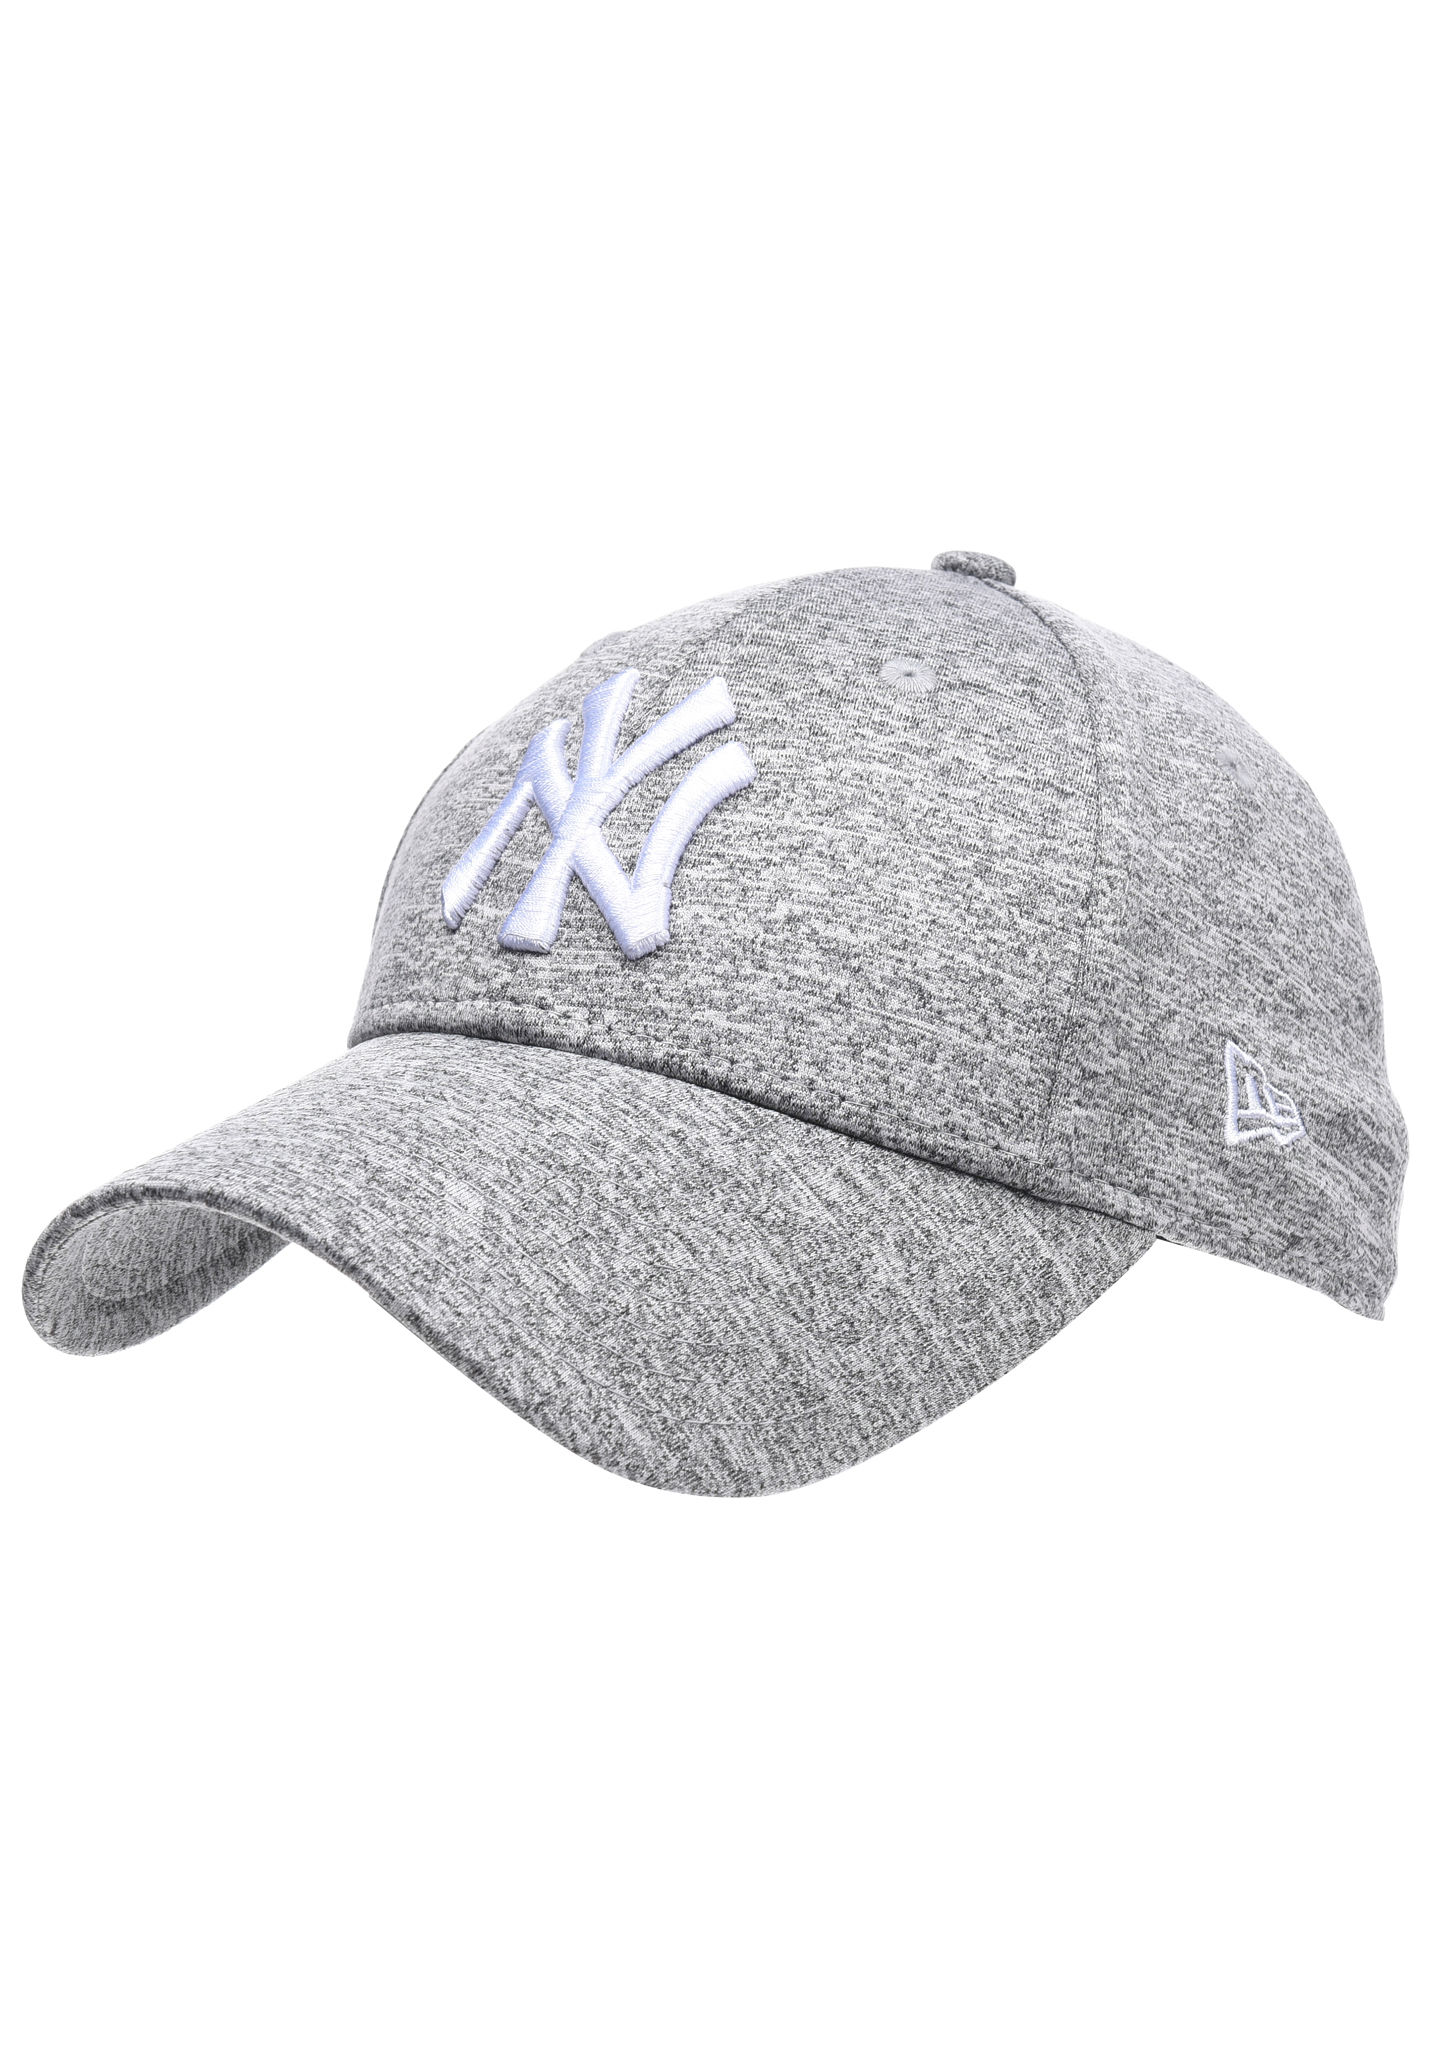 NEW Era Jersey Fleck 9Forty New York Yankees - Snapback Cap for Women -  Grey - Planet Sports 81d3ea7e4a35